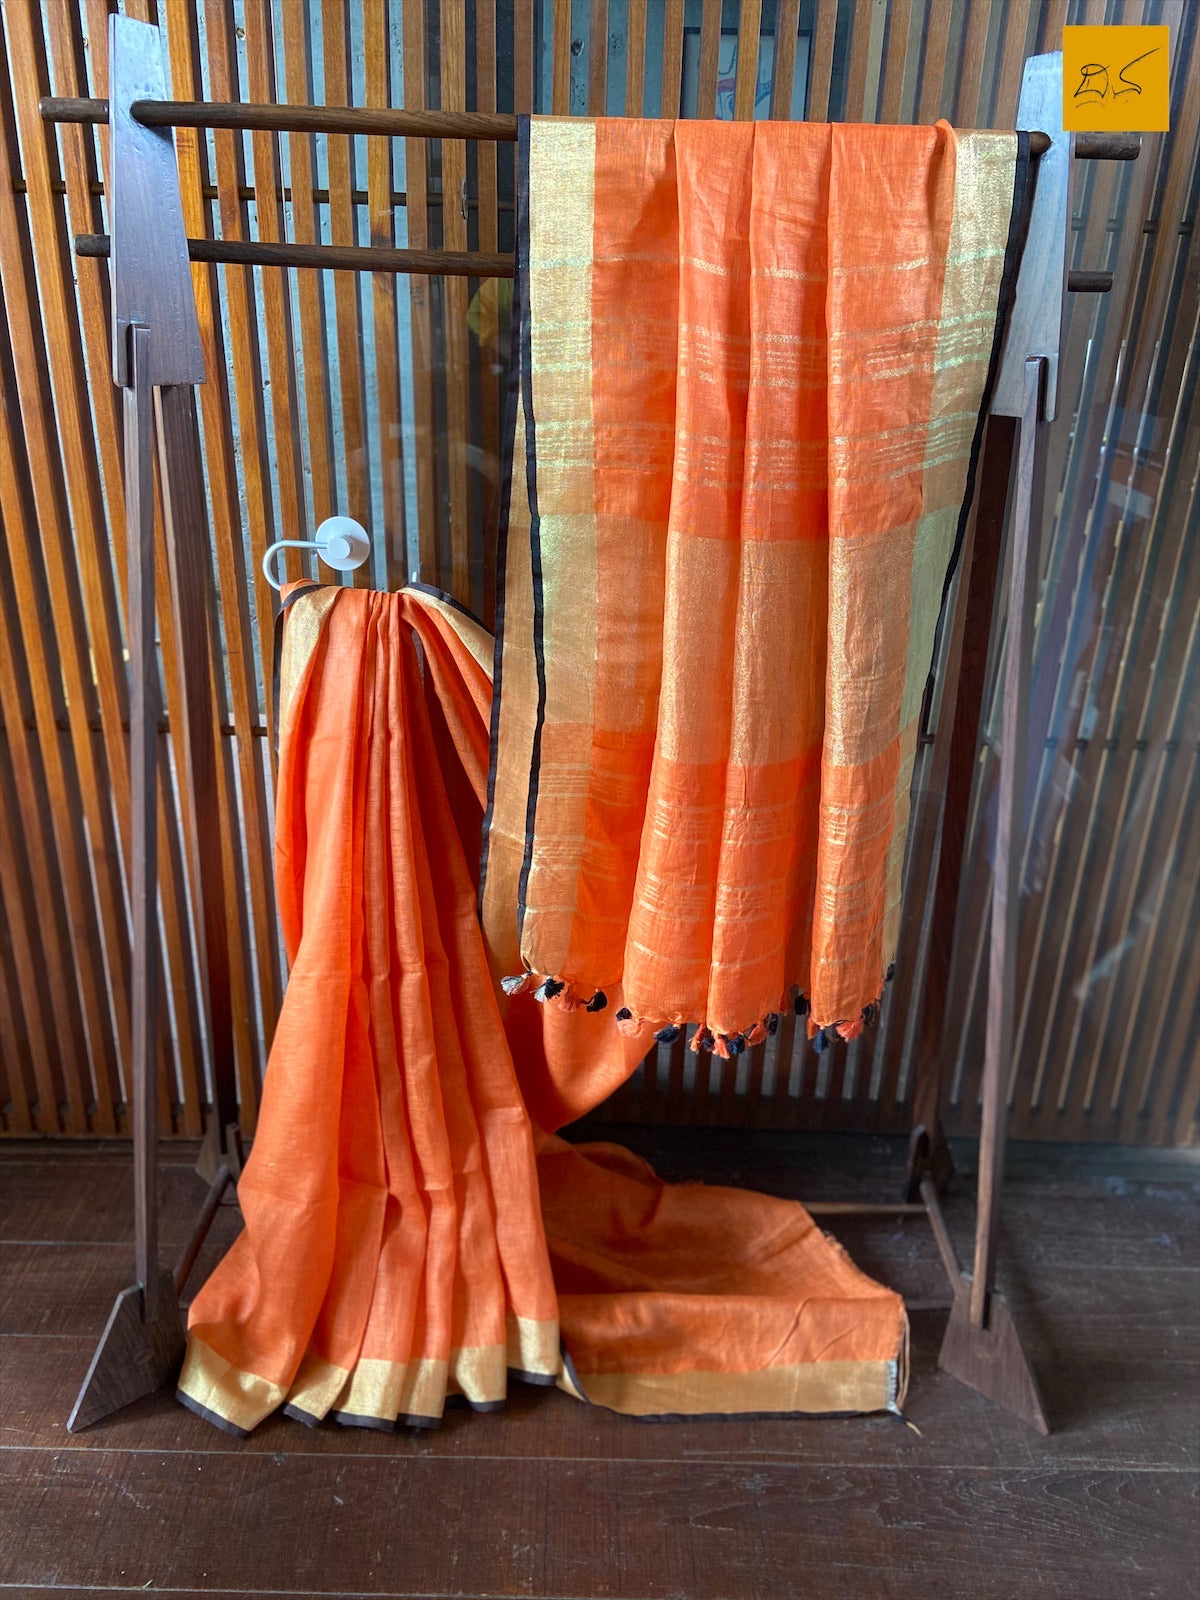 An orange linen saree which brings delight to the owner when draped. A perfect saree for work wear. Look gorgeous in this saree by pairing it with a printed or brocade blouse. This is a gorgeous Linen handwoven Saree with a orange body. New trend of Saree designs, Saree for artists, art lovers, architects, saree lovers, Saree connoisseurs, musicians, dancers, doctors, linen saree, indian saree images, latest sarees with price, only saree images, new saree design.